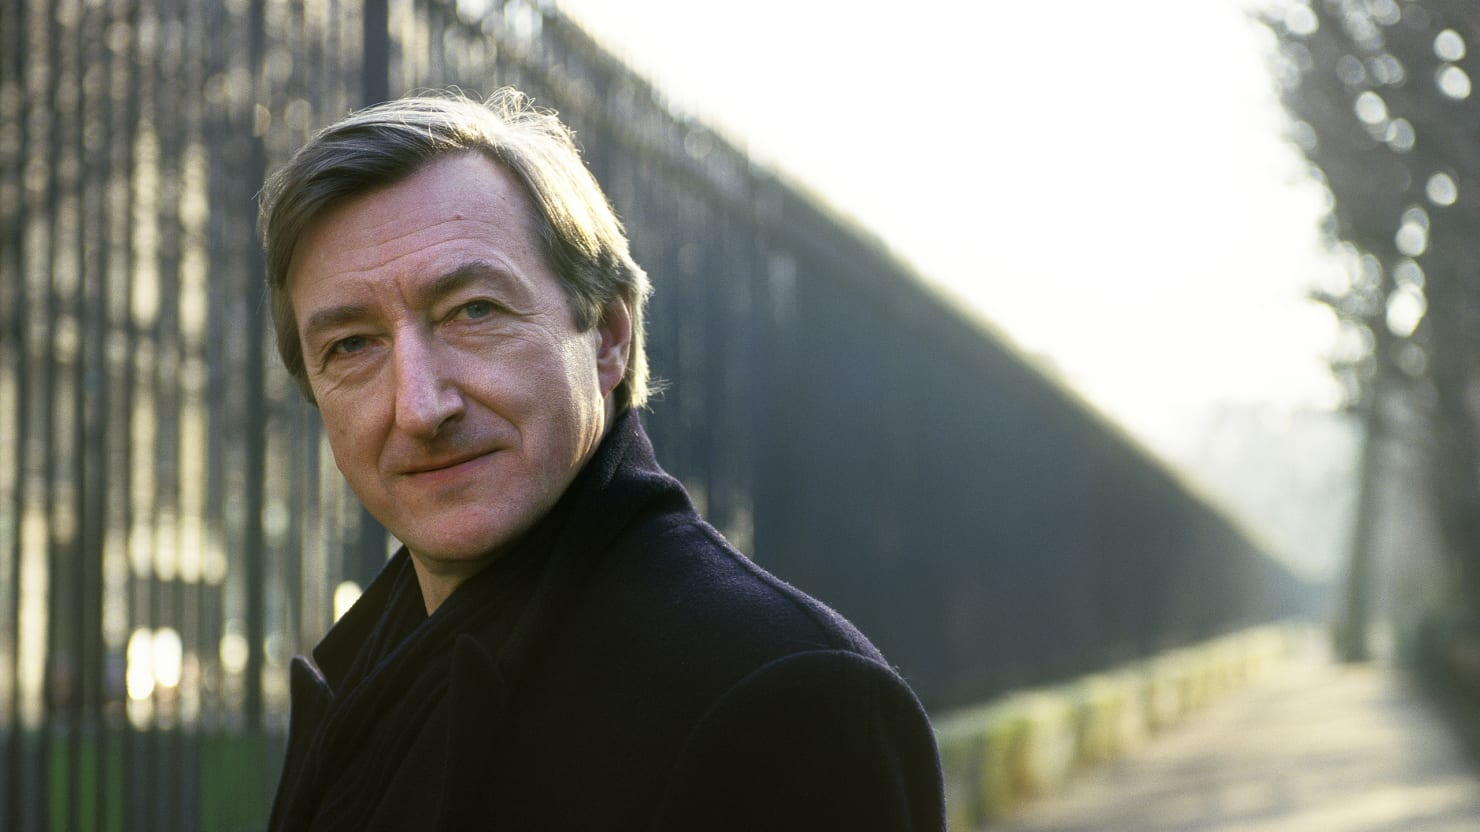 julian barnes essays Anyone who loves france (or just feels strongly about it), or has succumbed to the spell of julian barnes's previous books, will be enraptured by this collection of essays on the country and its culture barnes's appreciation extends from france's vanishing peasantry to its hyper-literate pop.